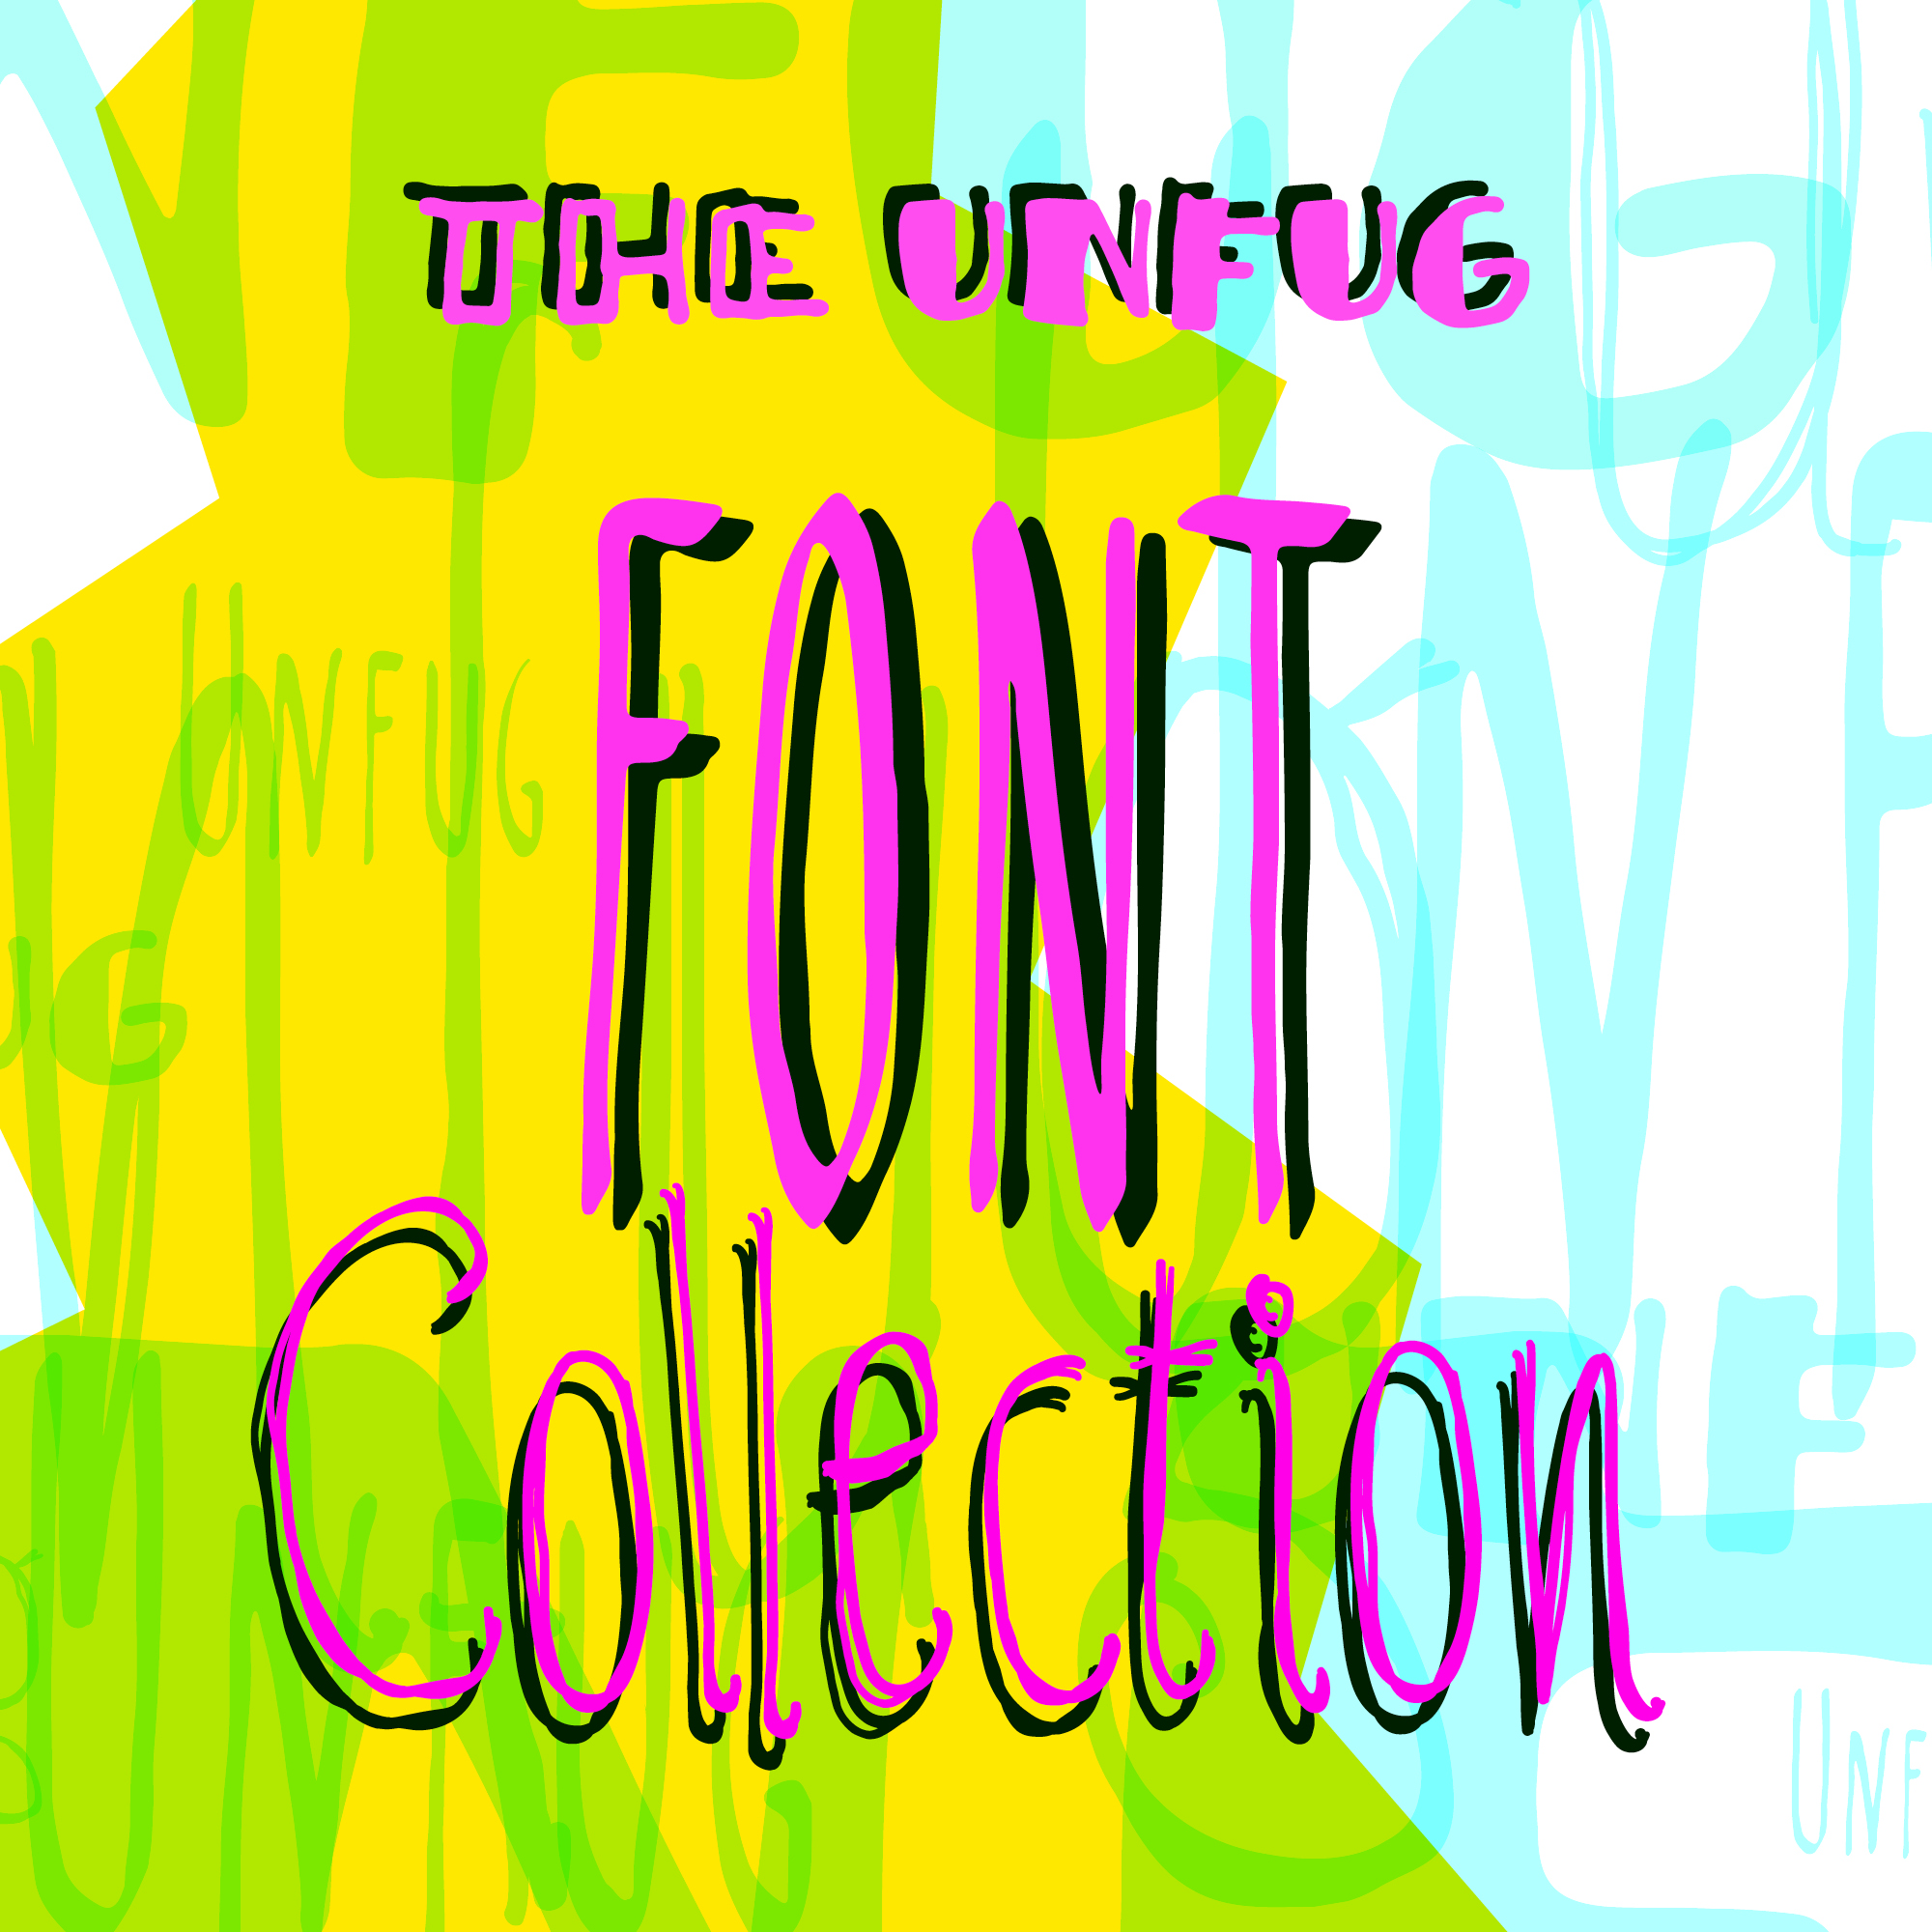 Präsentation der Schrift Unfug - Collection: Thumbnail